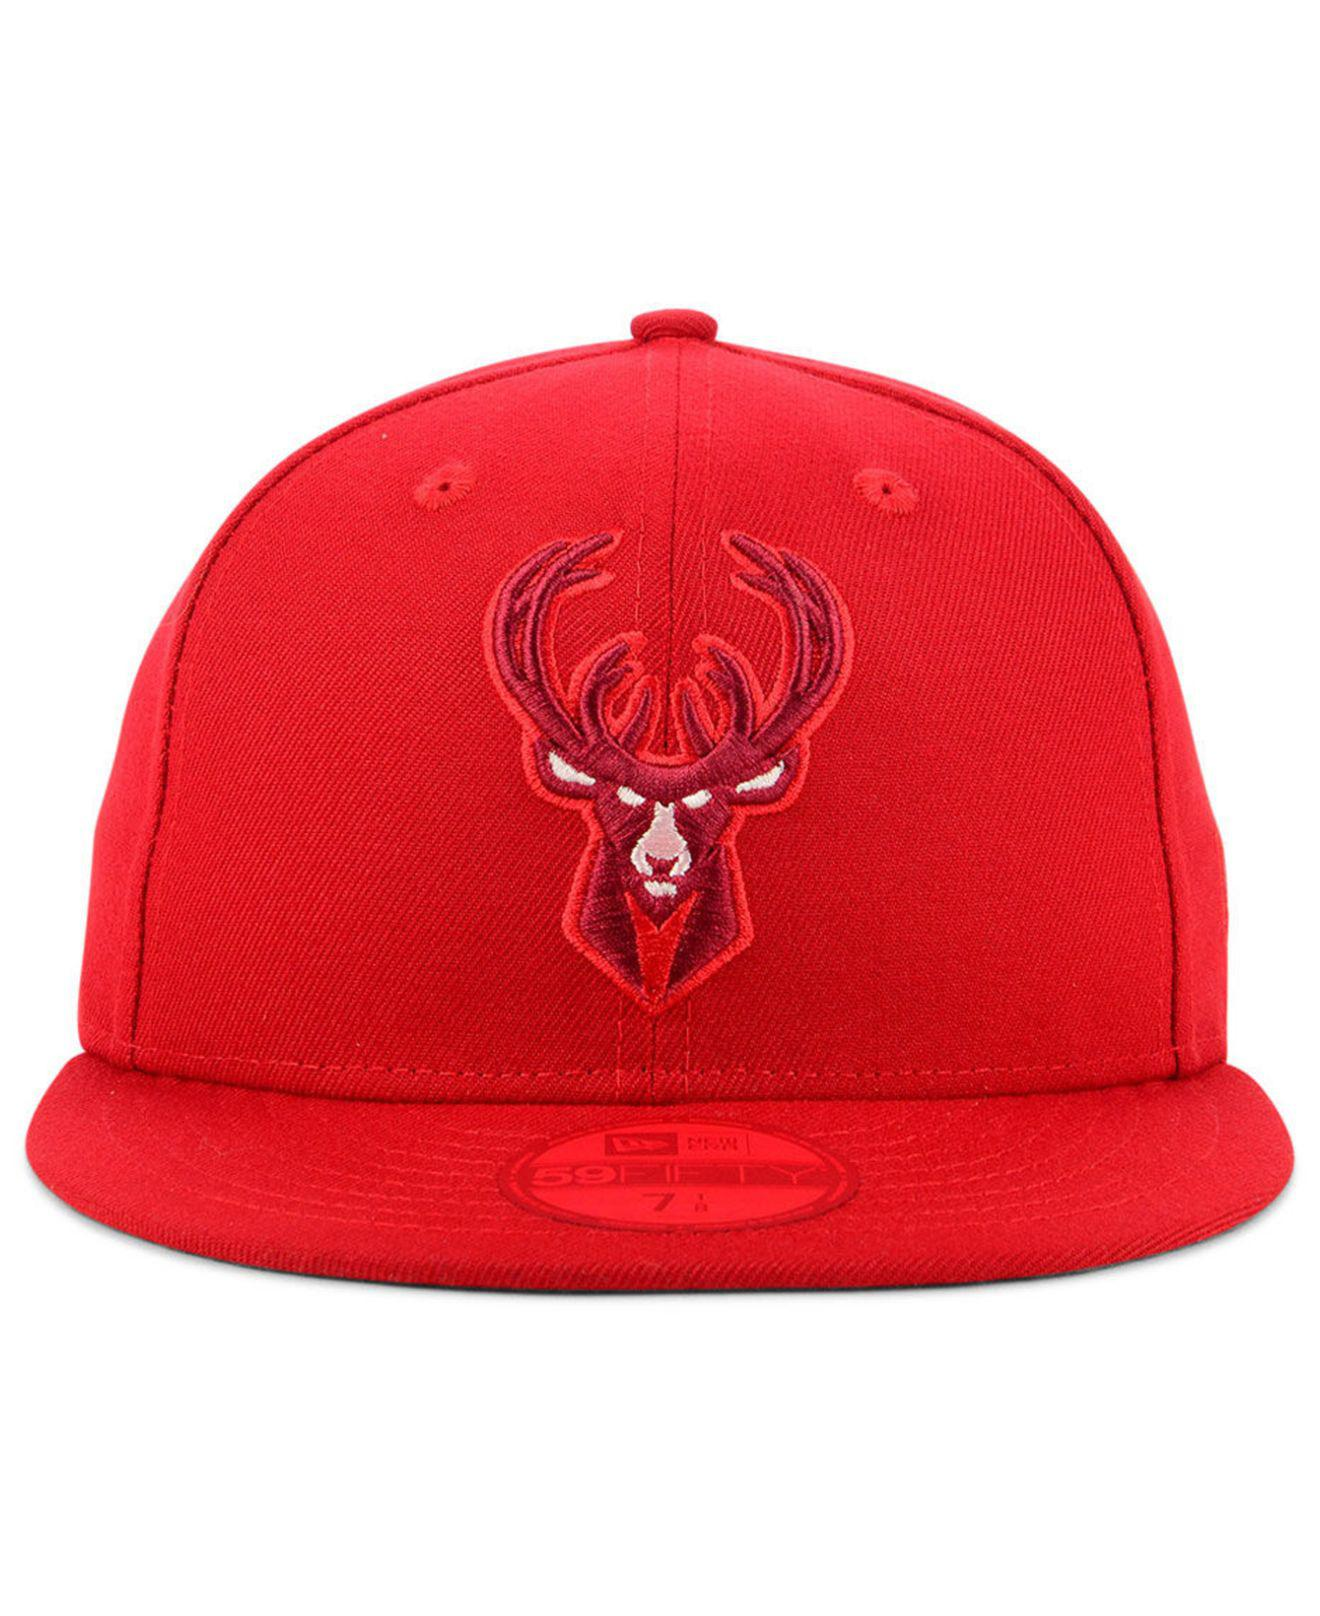 official photos 11e63 90030 ... czech lyst ktz milwaukee bucks color prism pack 59fifty fitted cap in  red for men 0e5d9